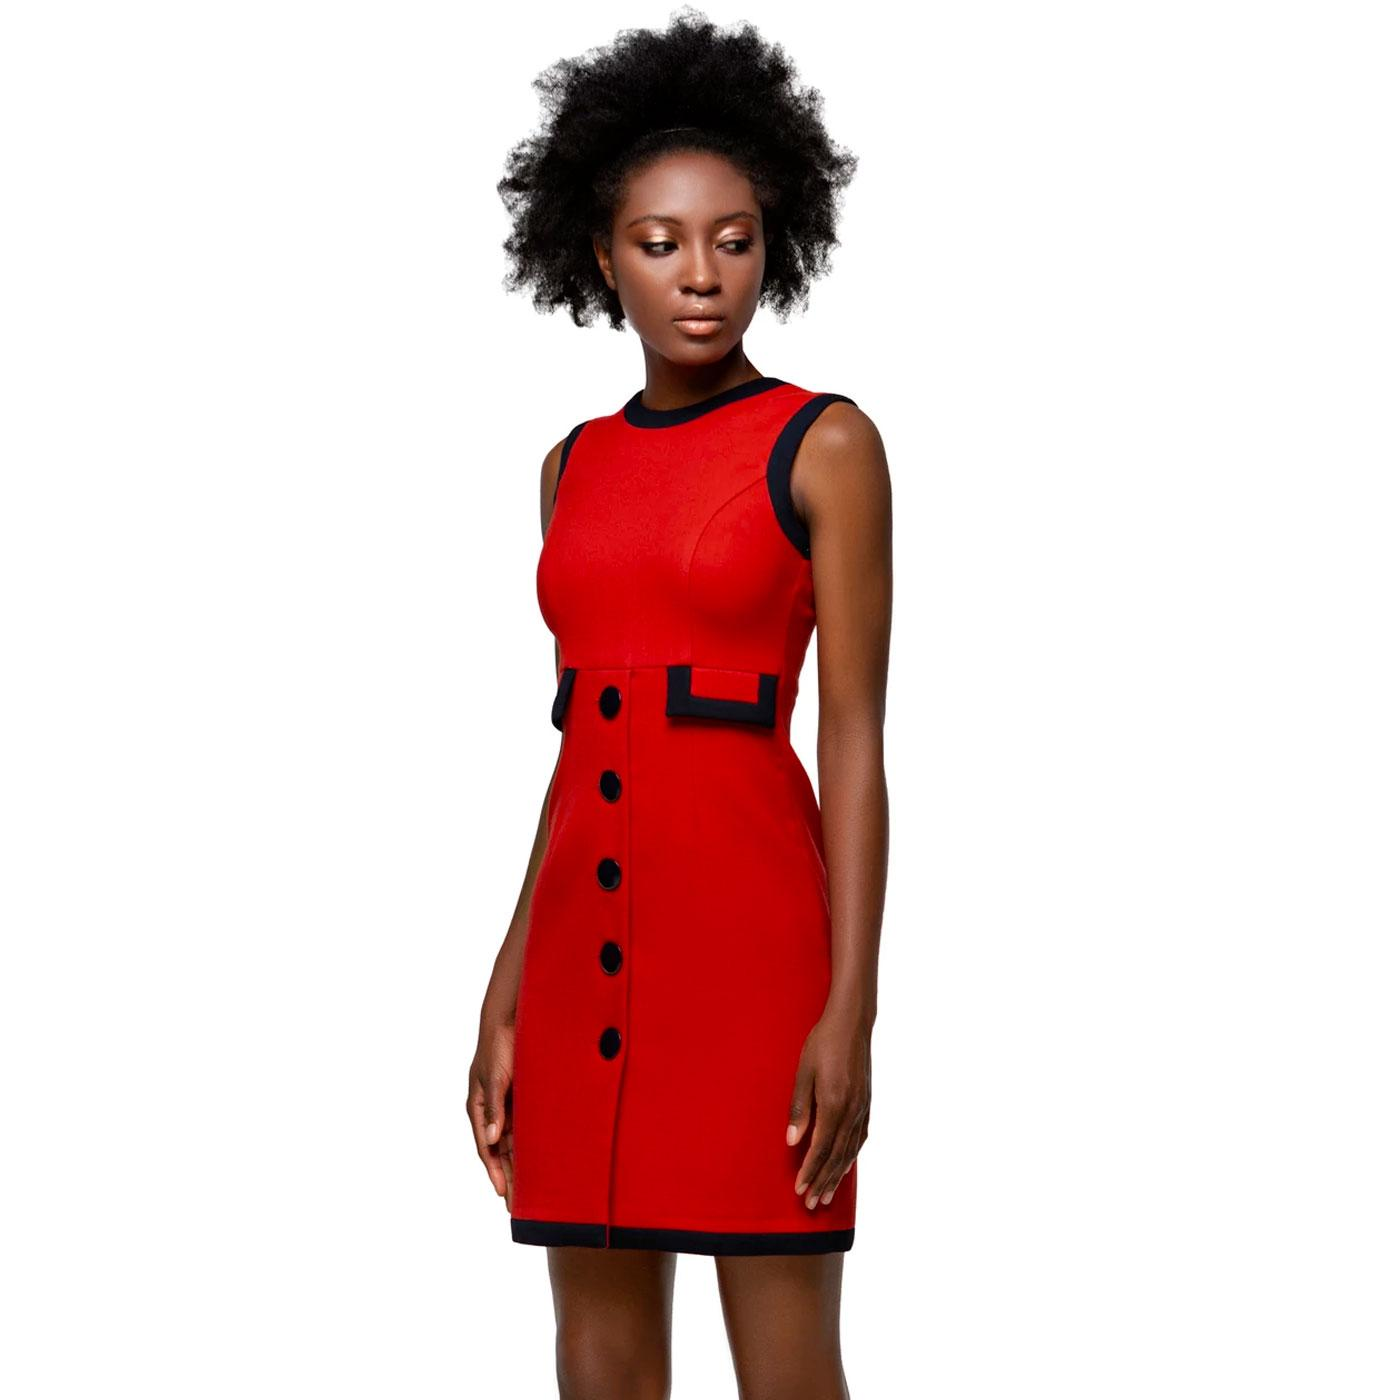 MARMALADE 1960s Black Trim Red Mod Dress